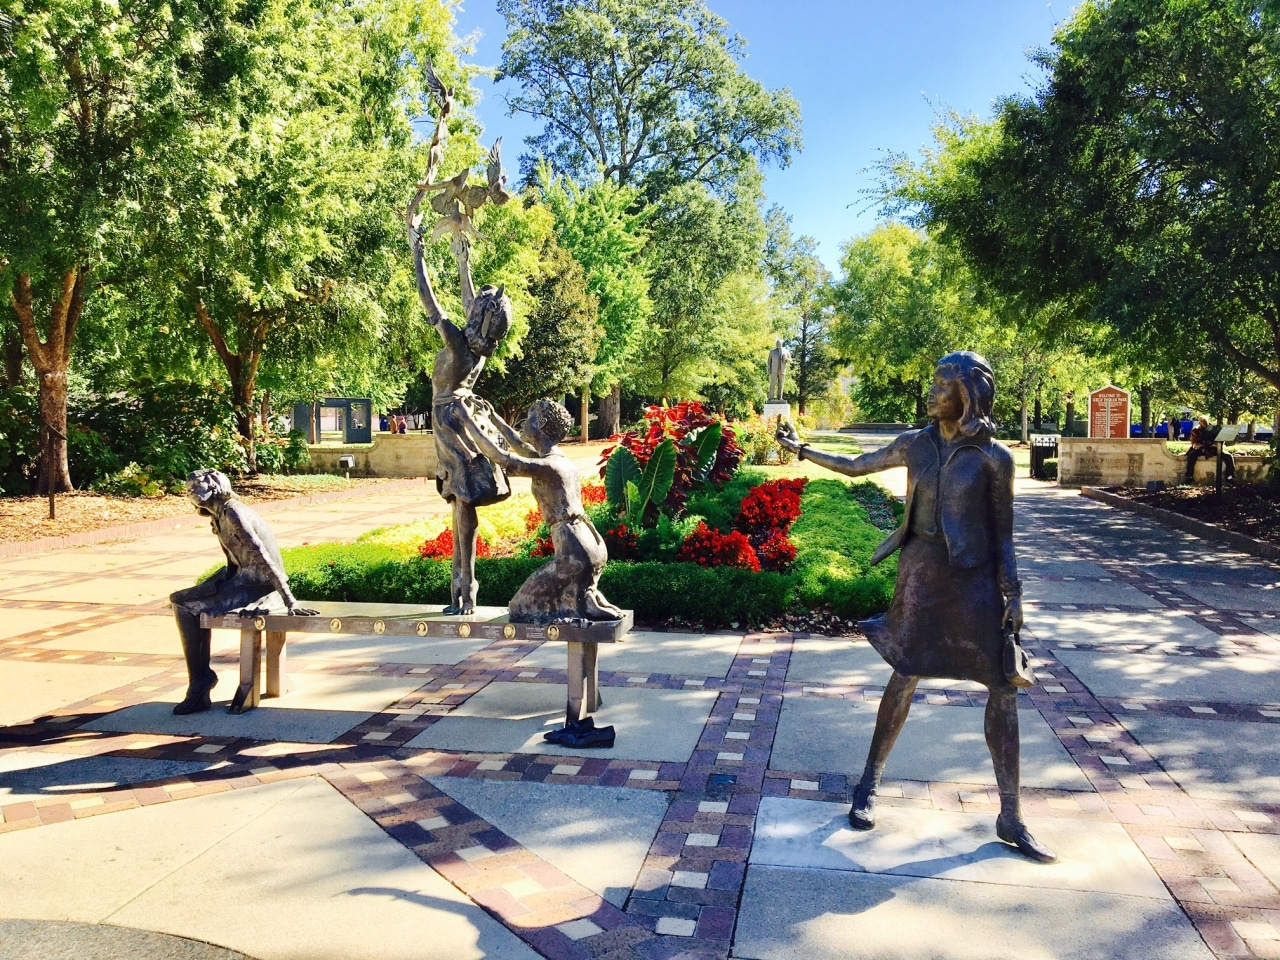 Four Little Girls Statue At The Entrance Of Kelly Ingram Park - New York Times Civil Rights Tour